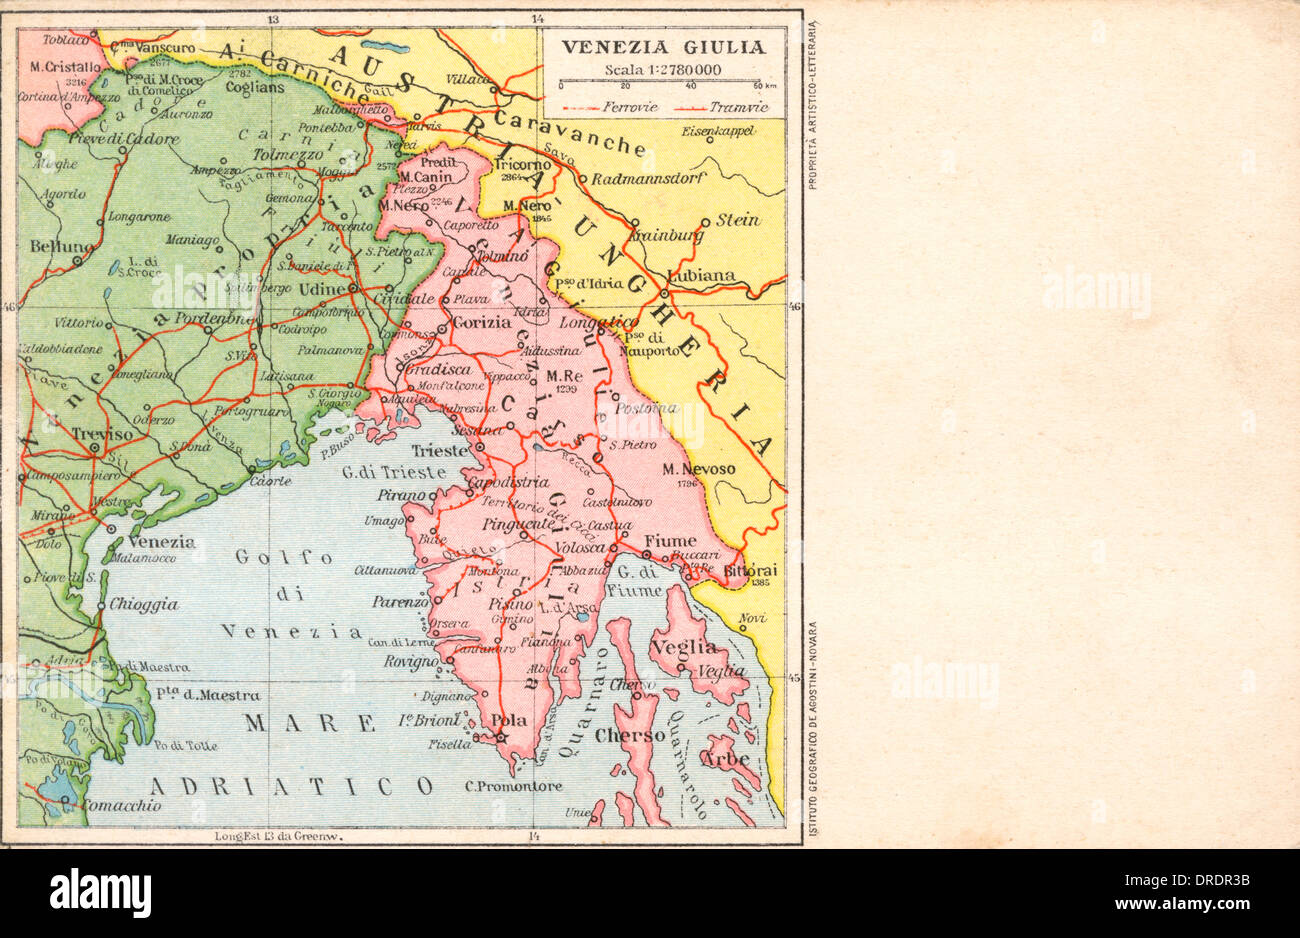 Italy - Venice - Map of the local region - Stock Image